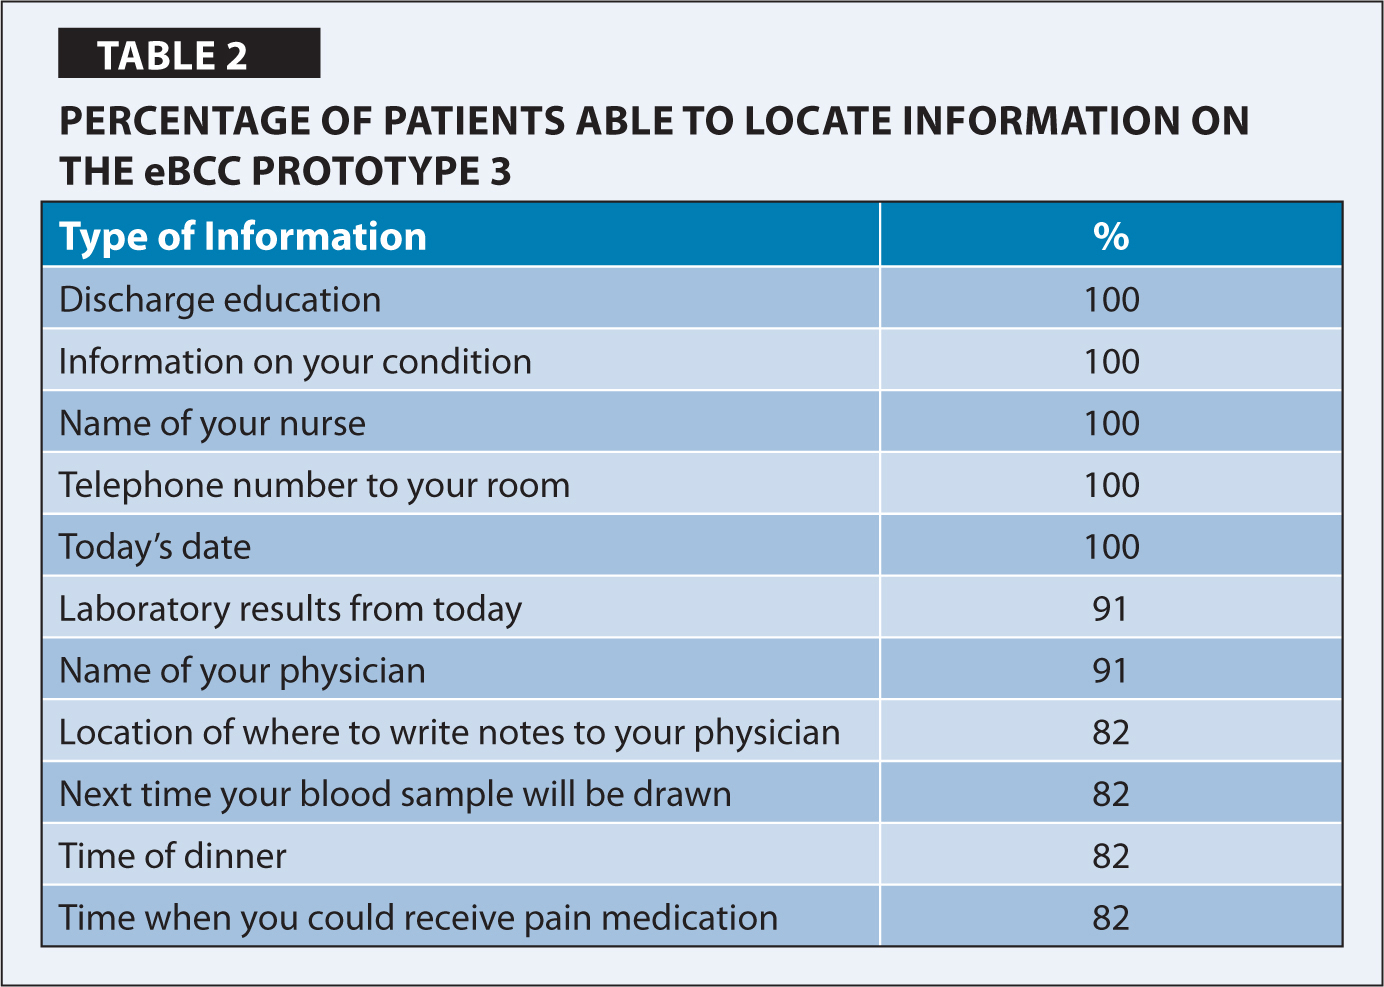 Percentage of Patients Able to Locate Information on the eBCC Prototype 3